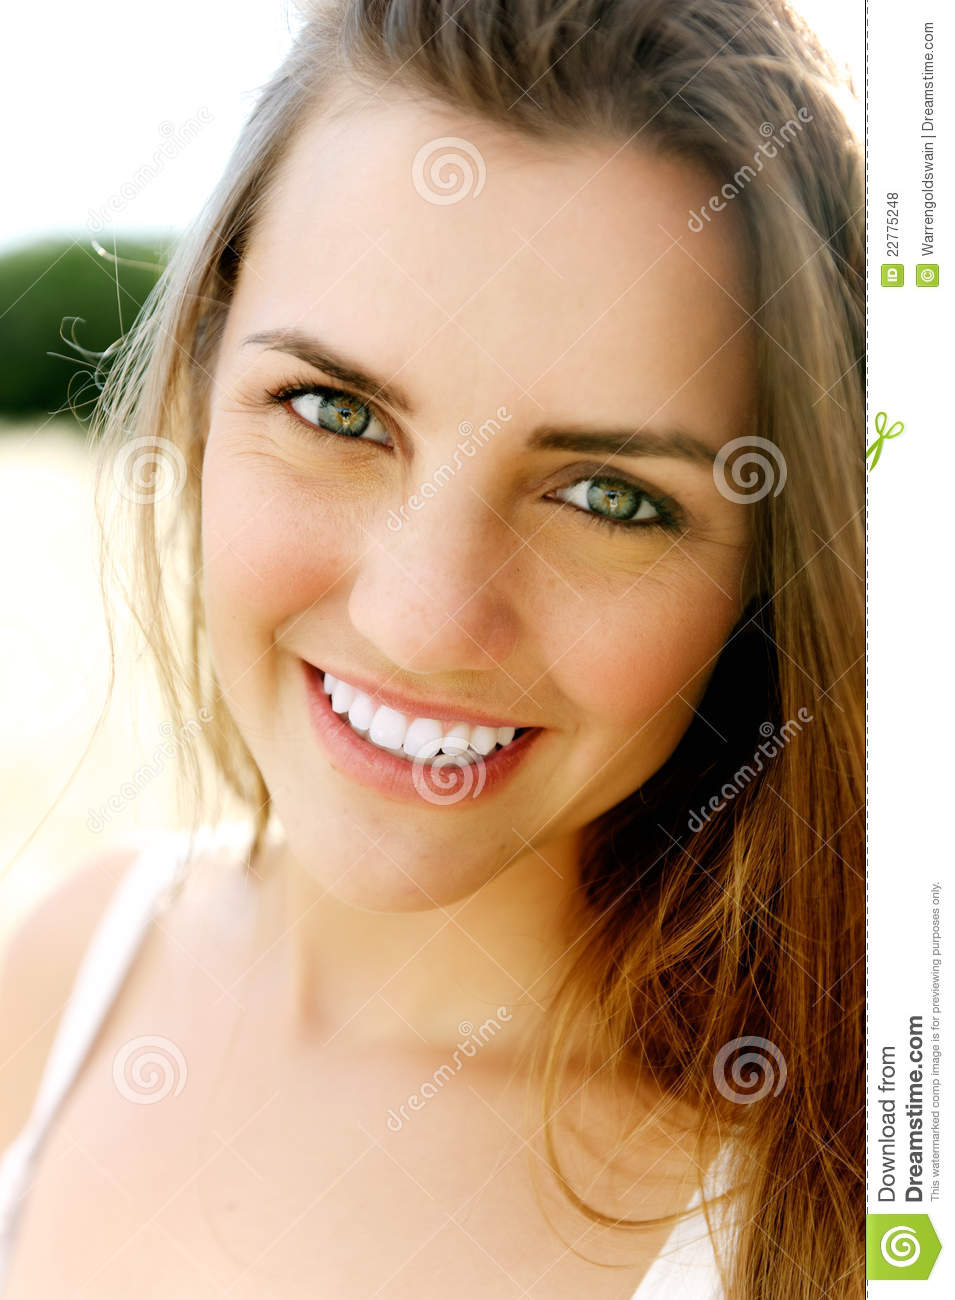 Smiling portrait of a gorgeous young woman